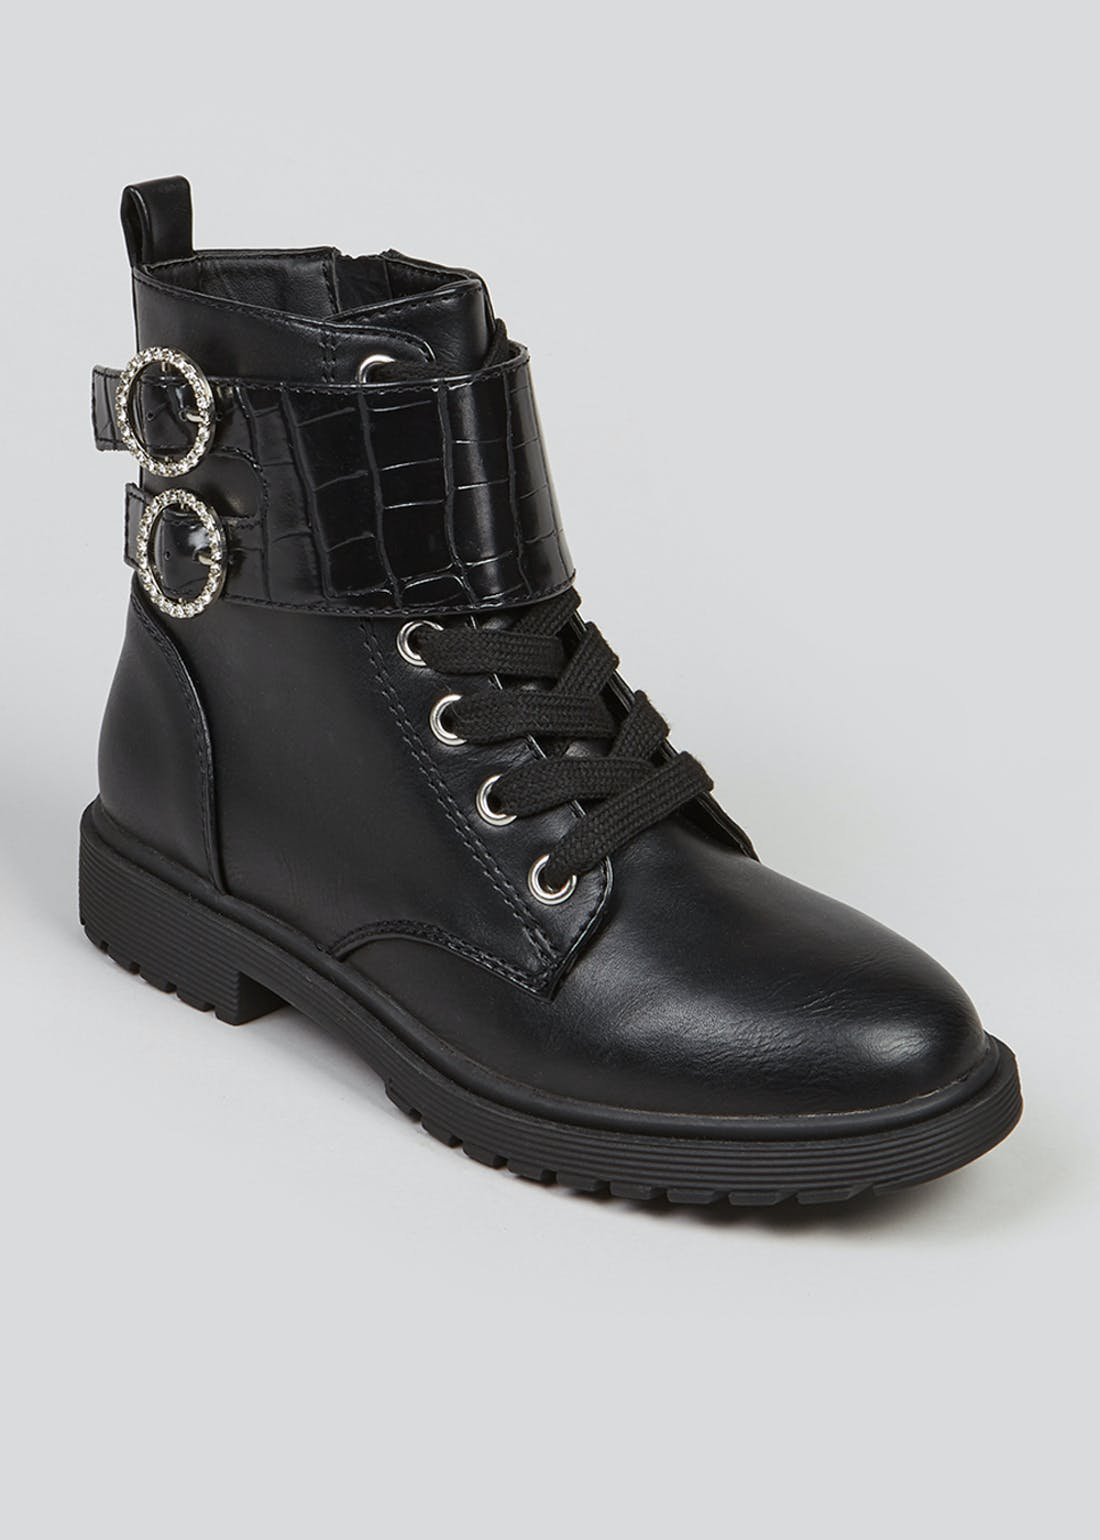 Girls Black Ankle Boots (Younger 10-Older 5)